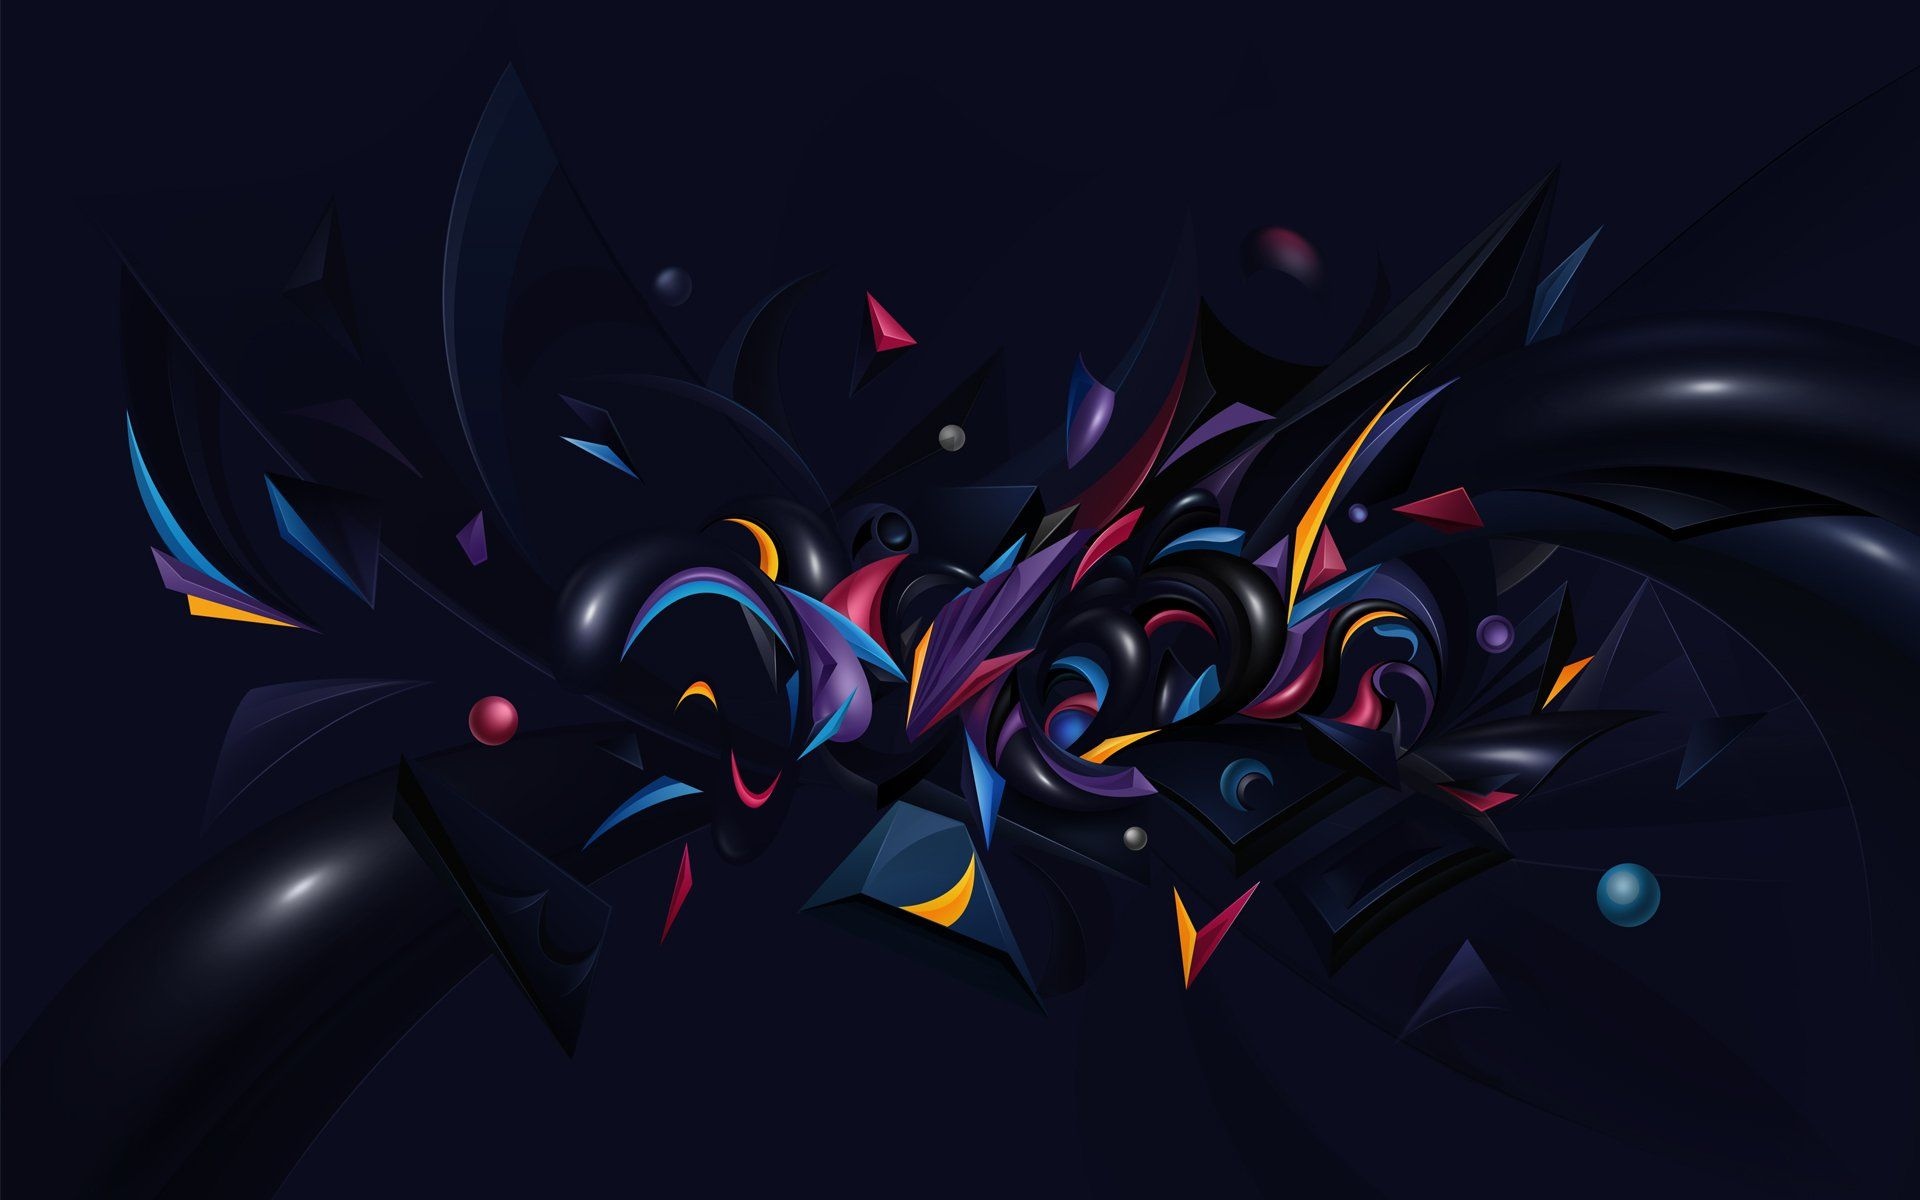 Our abstract wallpaper are very smooth from design